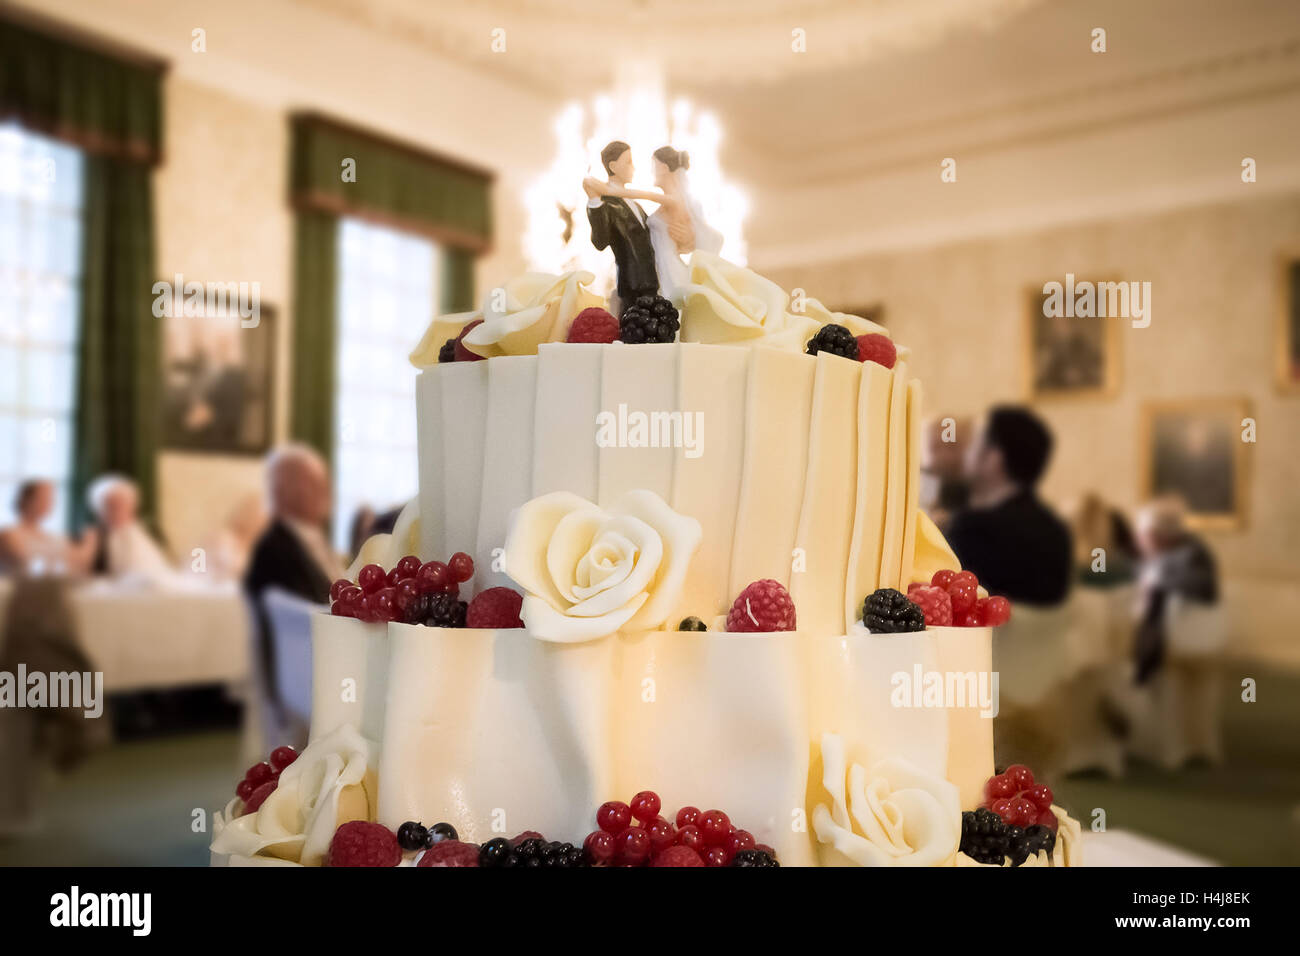 Wedding cake with male and female couple figurines - Stock Image